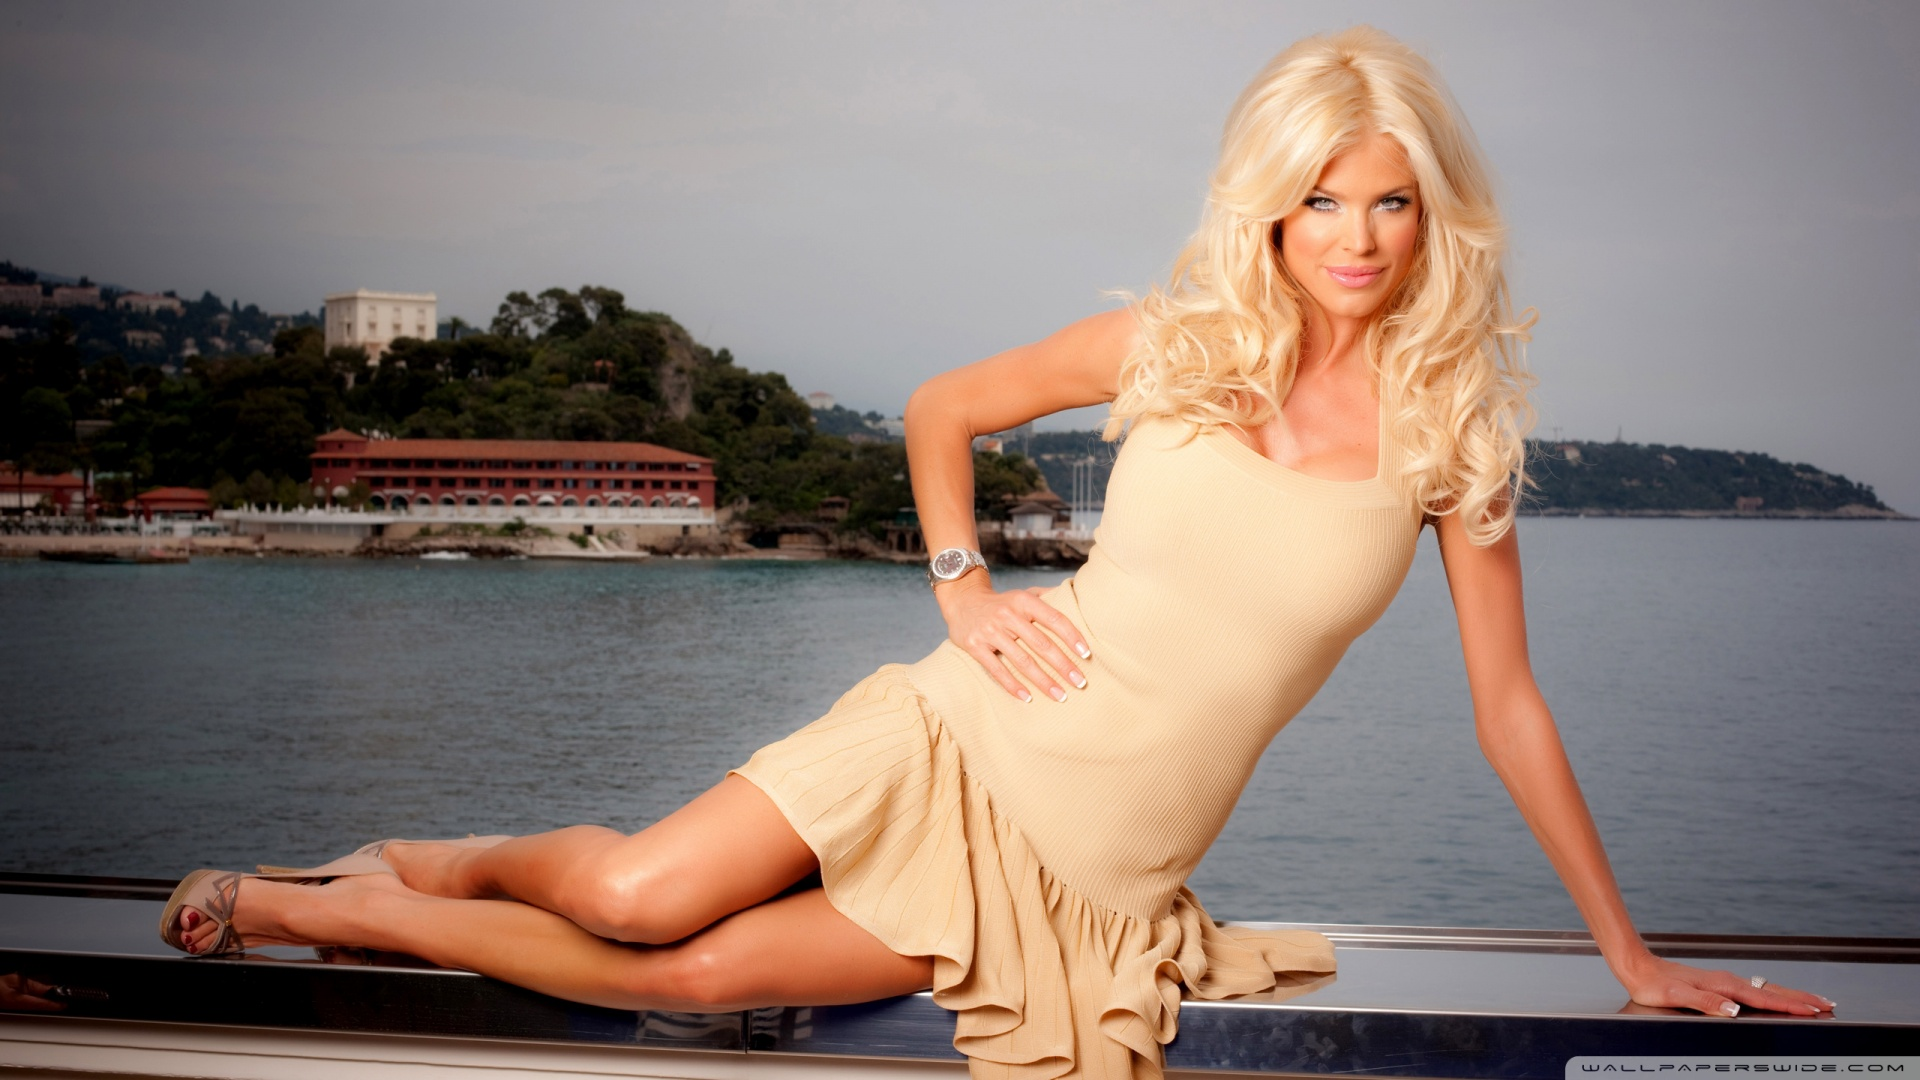 Victoria Silvstedt 4K HD Desktop Wallpaper for 4K Ultra HD TV 1920x1080